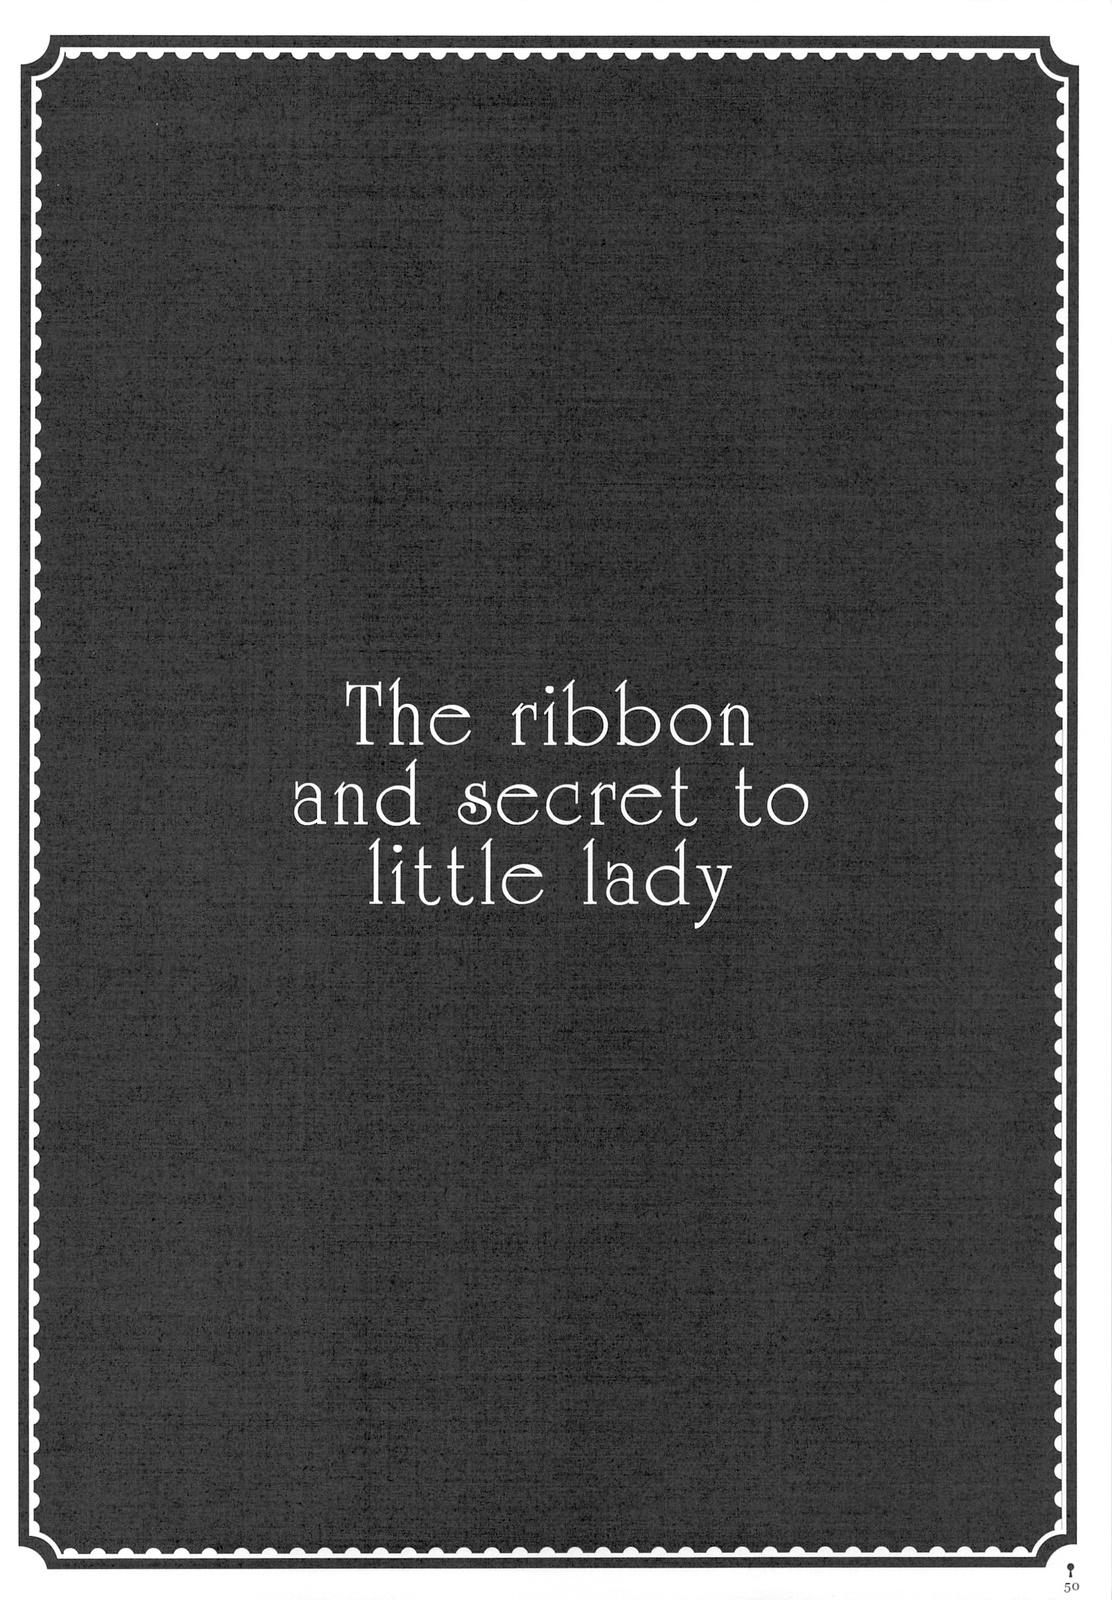 The ribbon and secret to little lady 51